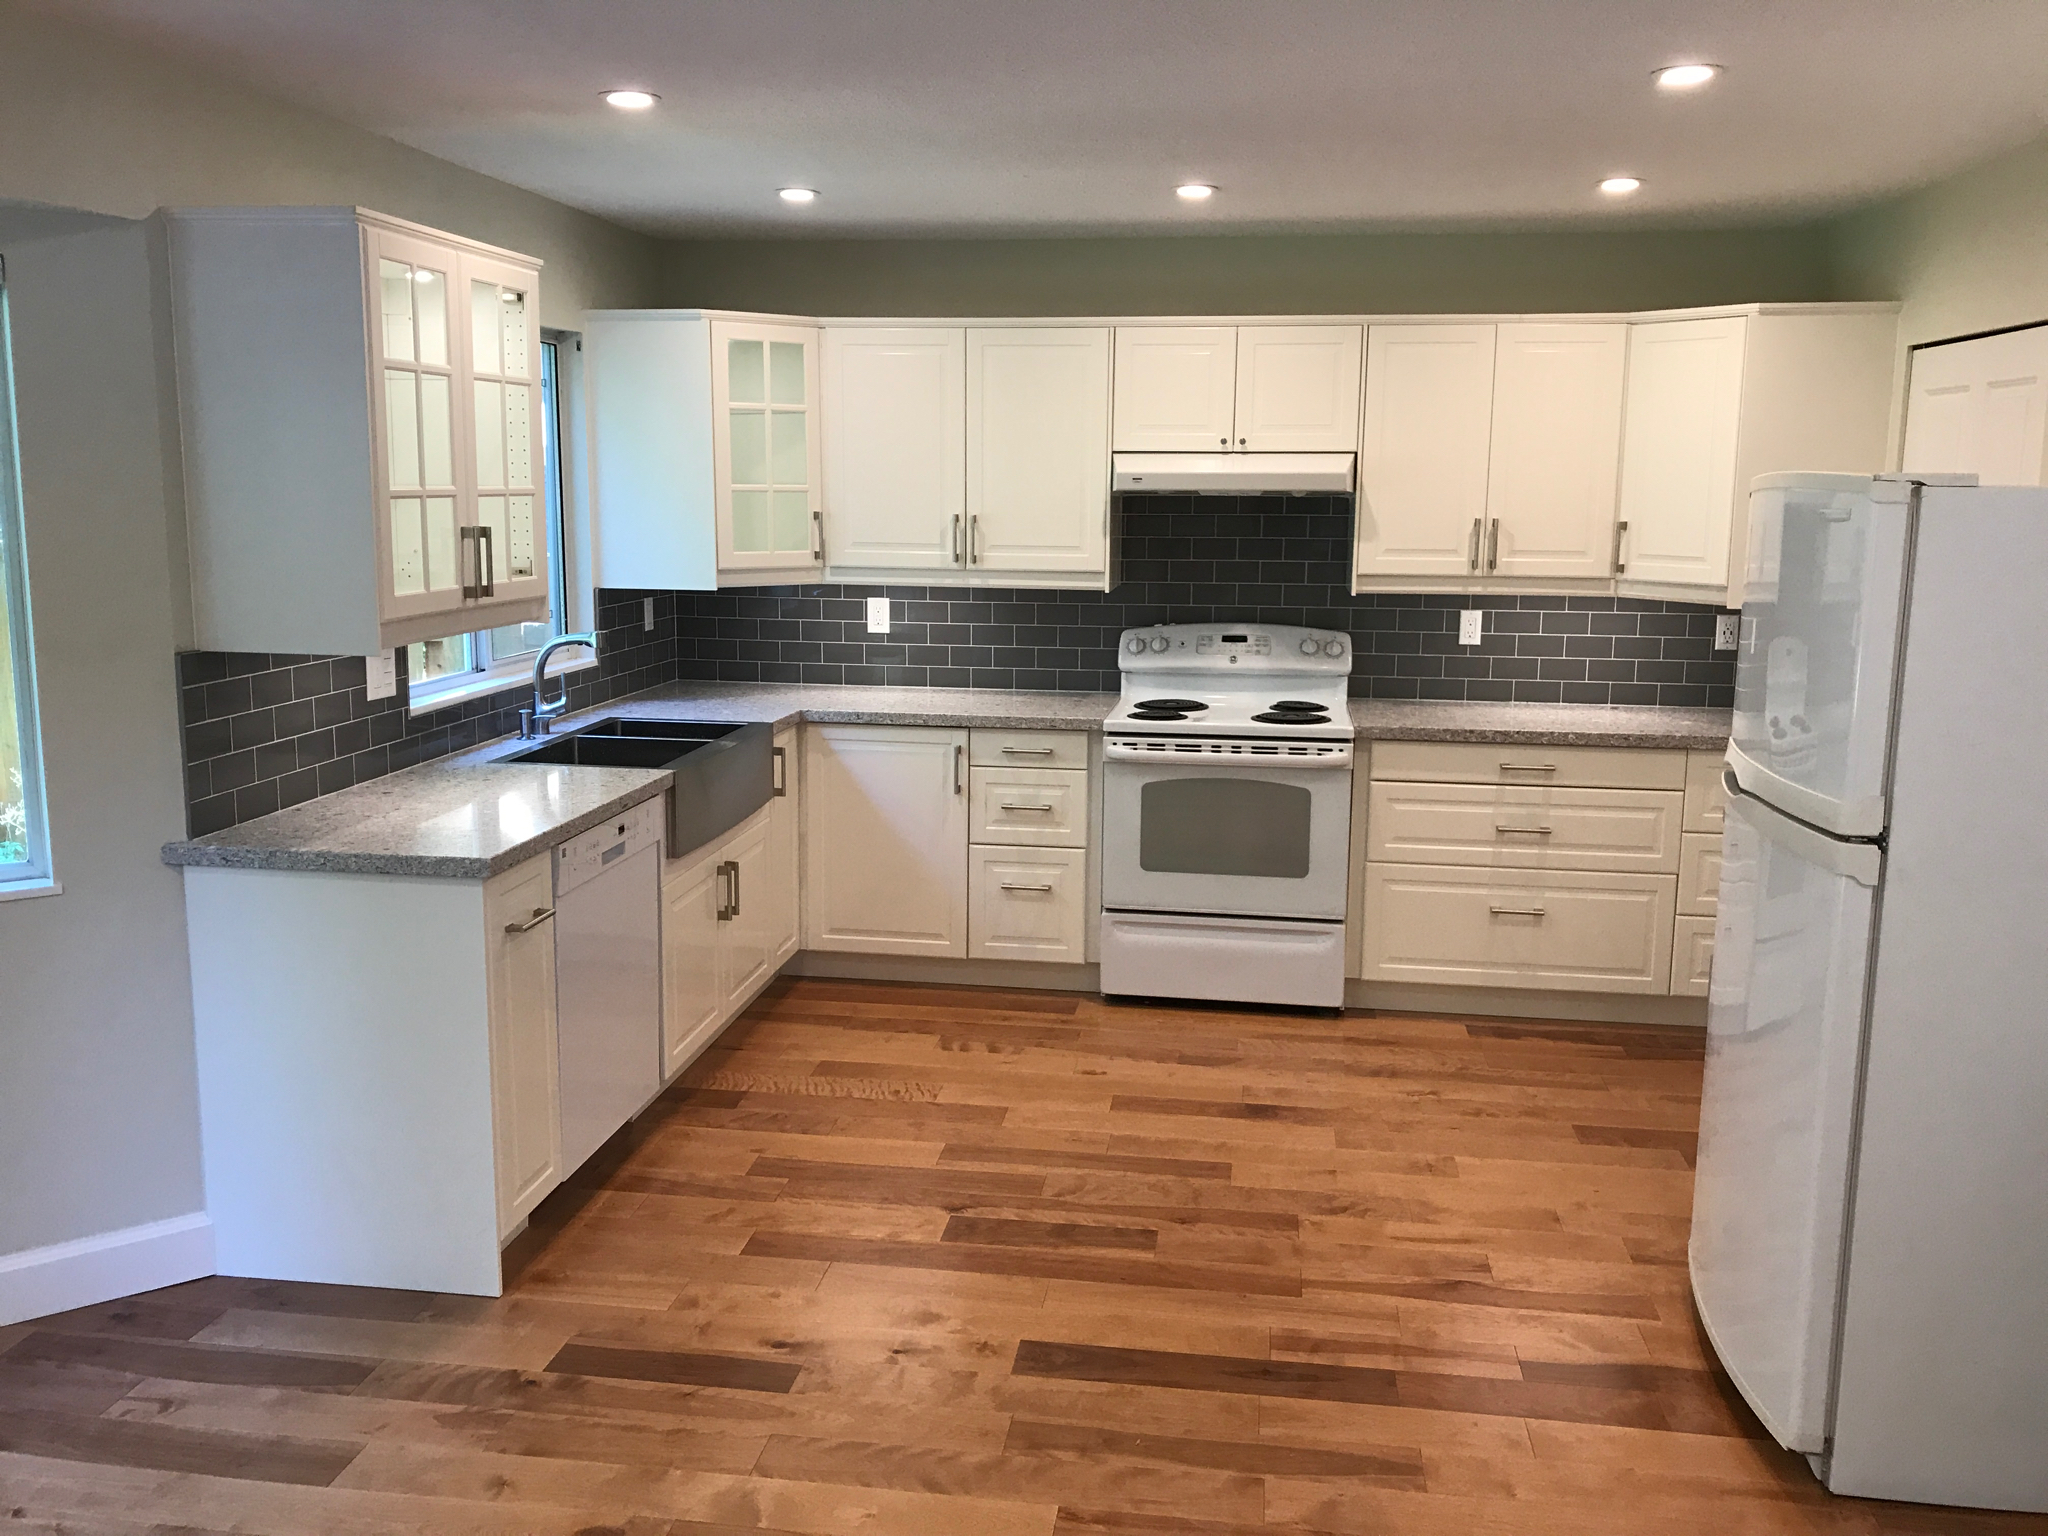 kitchens to go commercial kitchen equipment repair projects musil residence summer 2017 a beautiful modern open layout